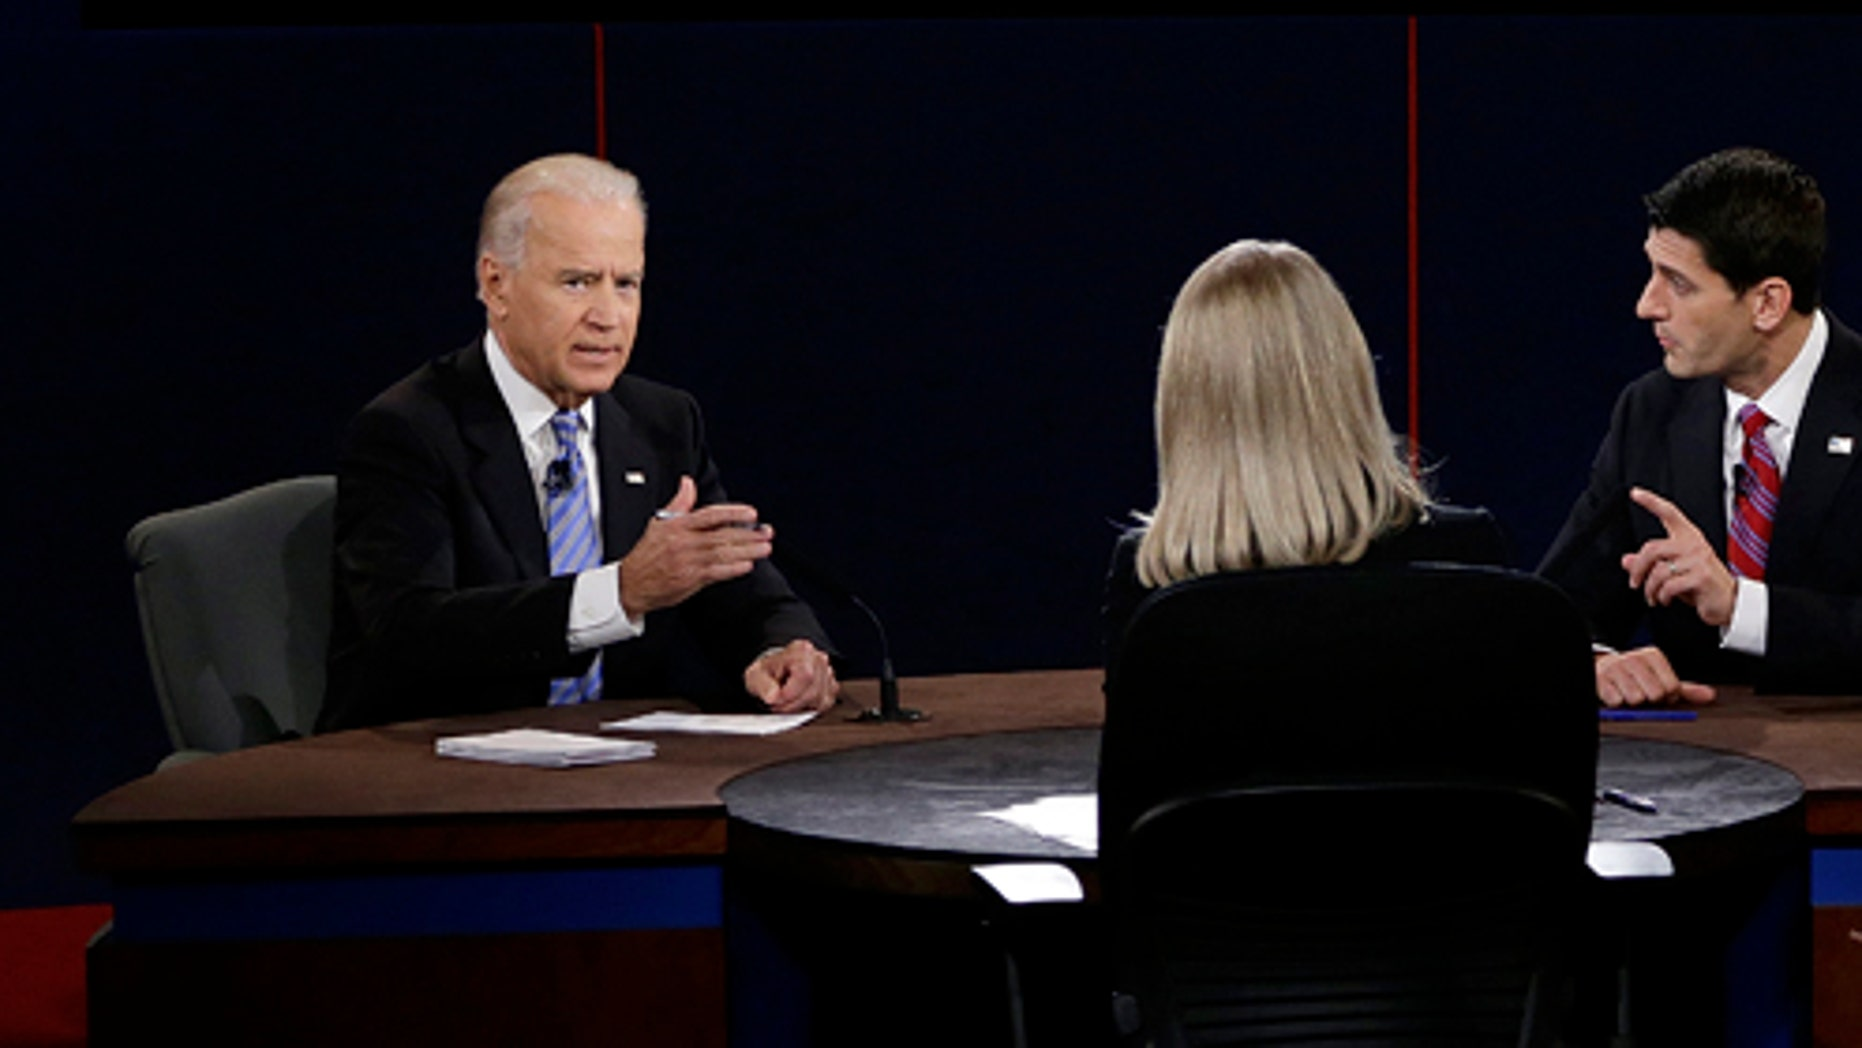 Vice President Joe Biden and Republican vice presidential nominee Rep. Paul Ryan of Wisconsin participate in during the vice presidential debate at Centre College, Thursday, Oct. 11, 2012, in Danville, Ky. (AP Photo/Charlie Neibergall)